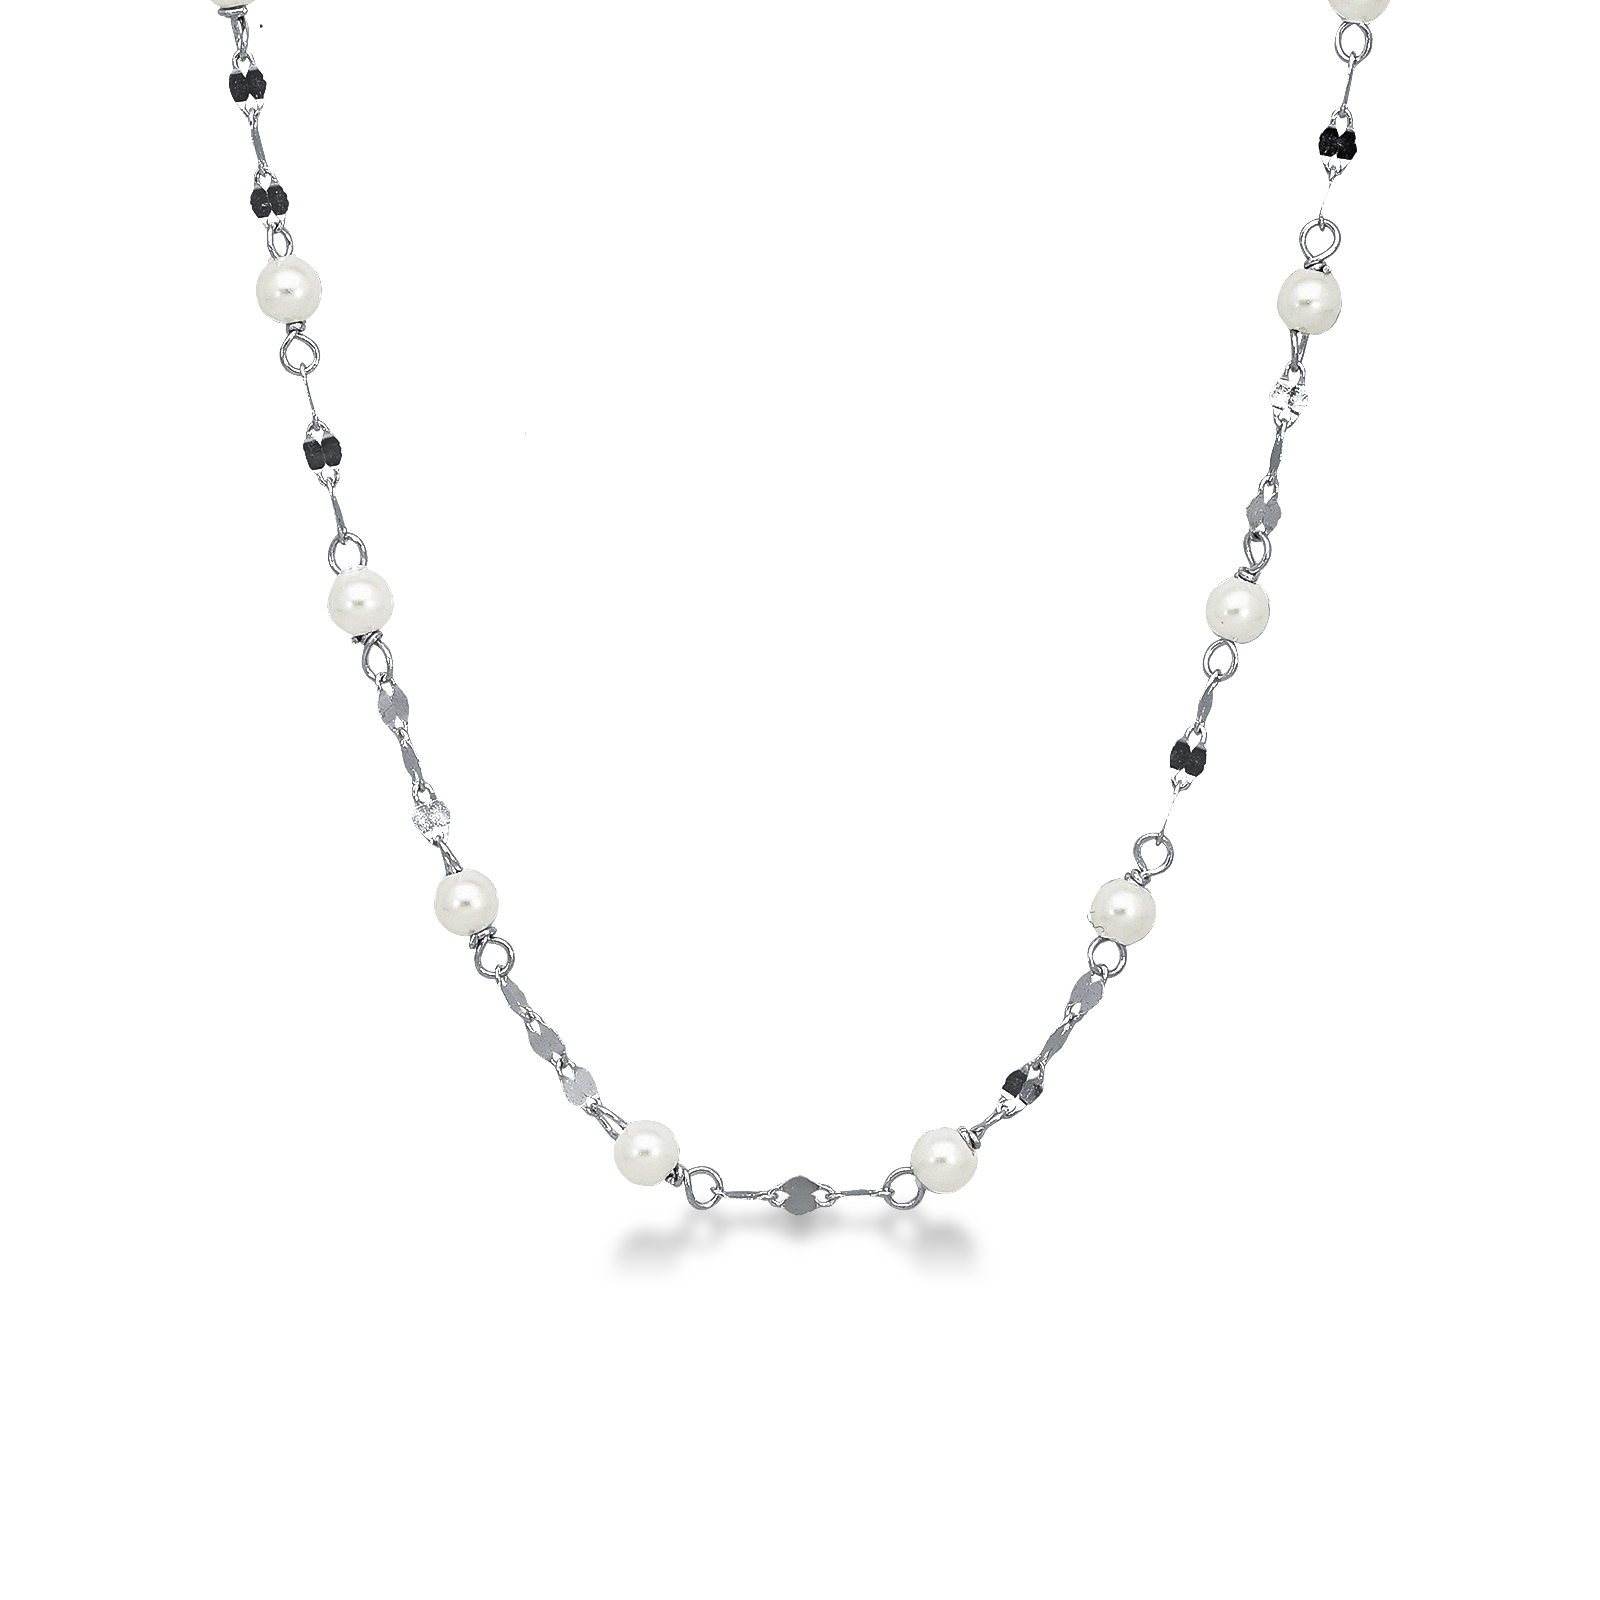 Necklace 18k White Gold with Sintetic Pearl